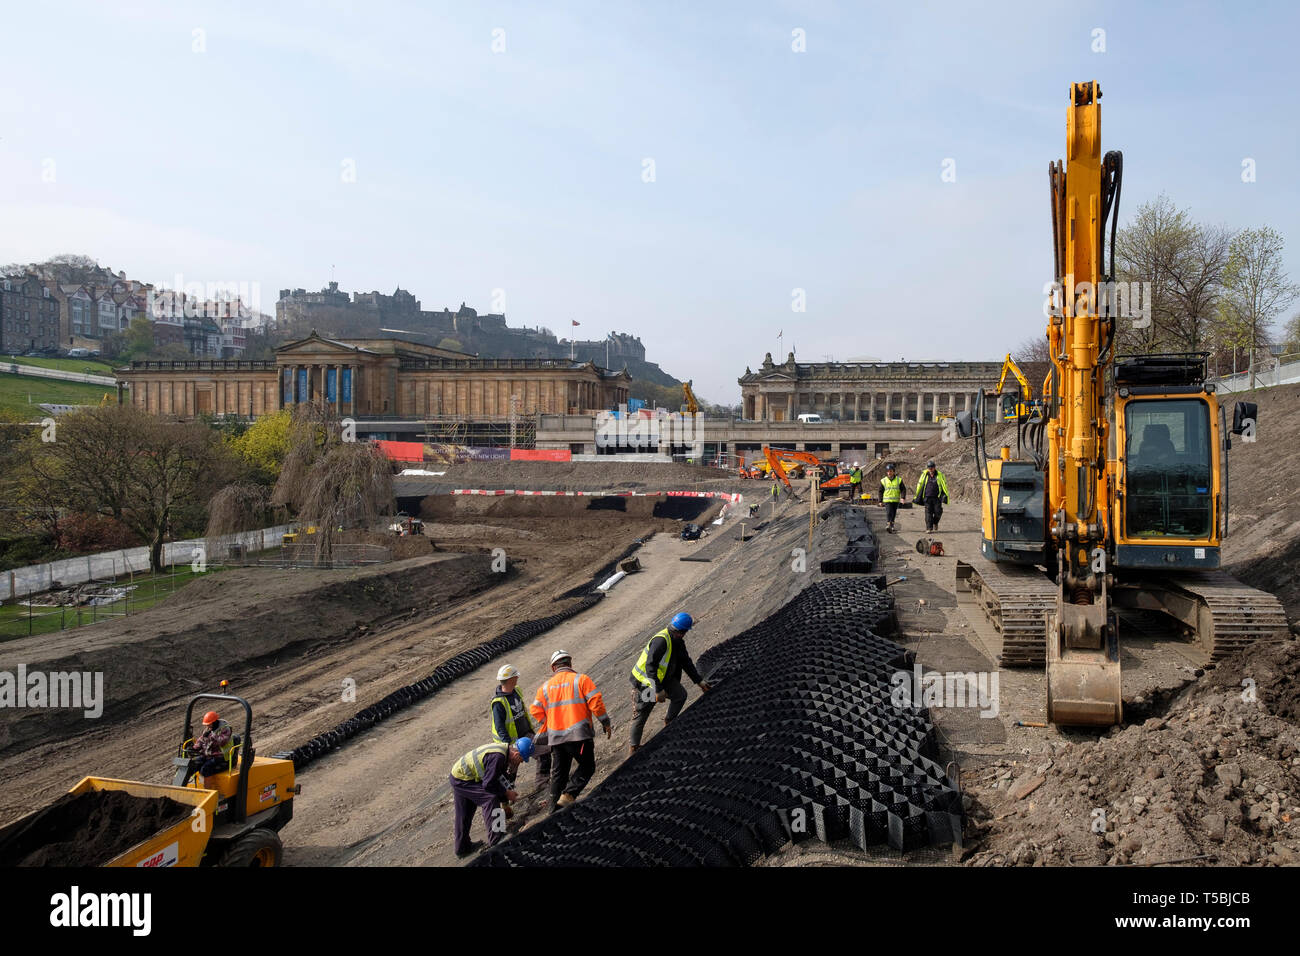 View of construction work in Princes Street Gardens for improvements to the National Galleries of Scotland.Edinburgh, Scotland, UK - Stock Image